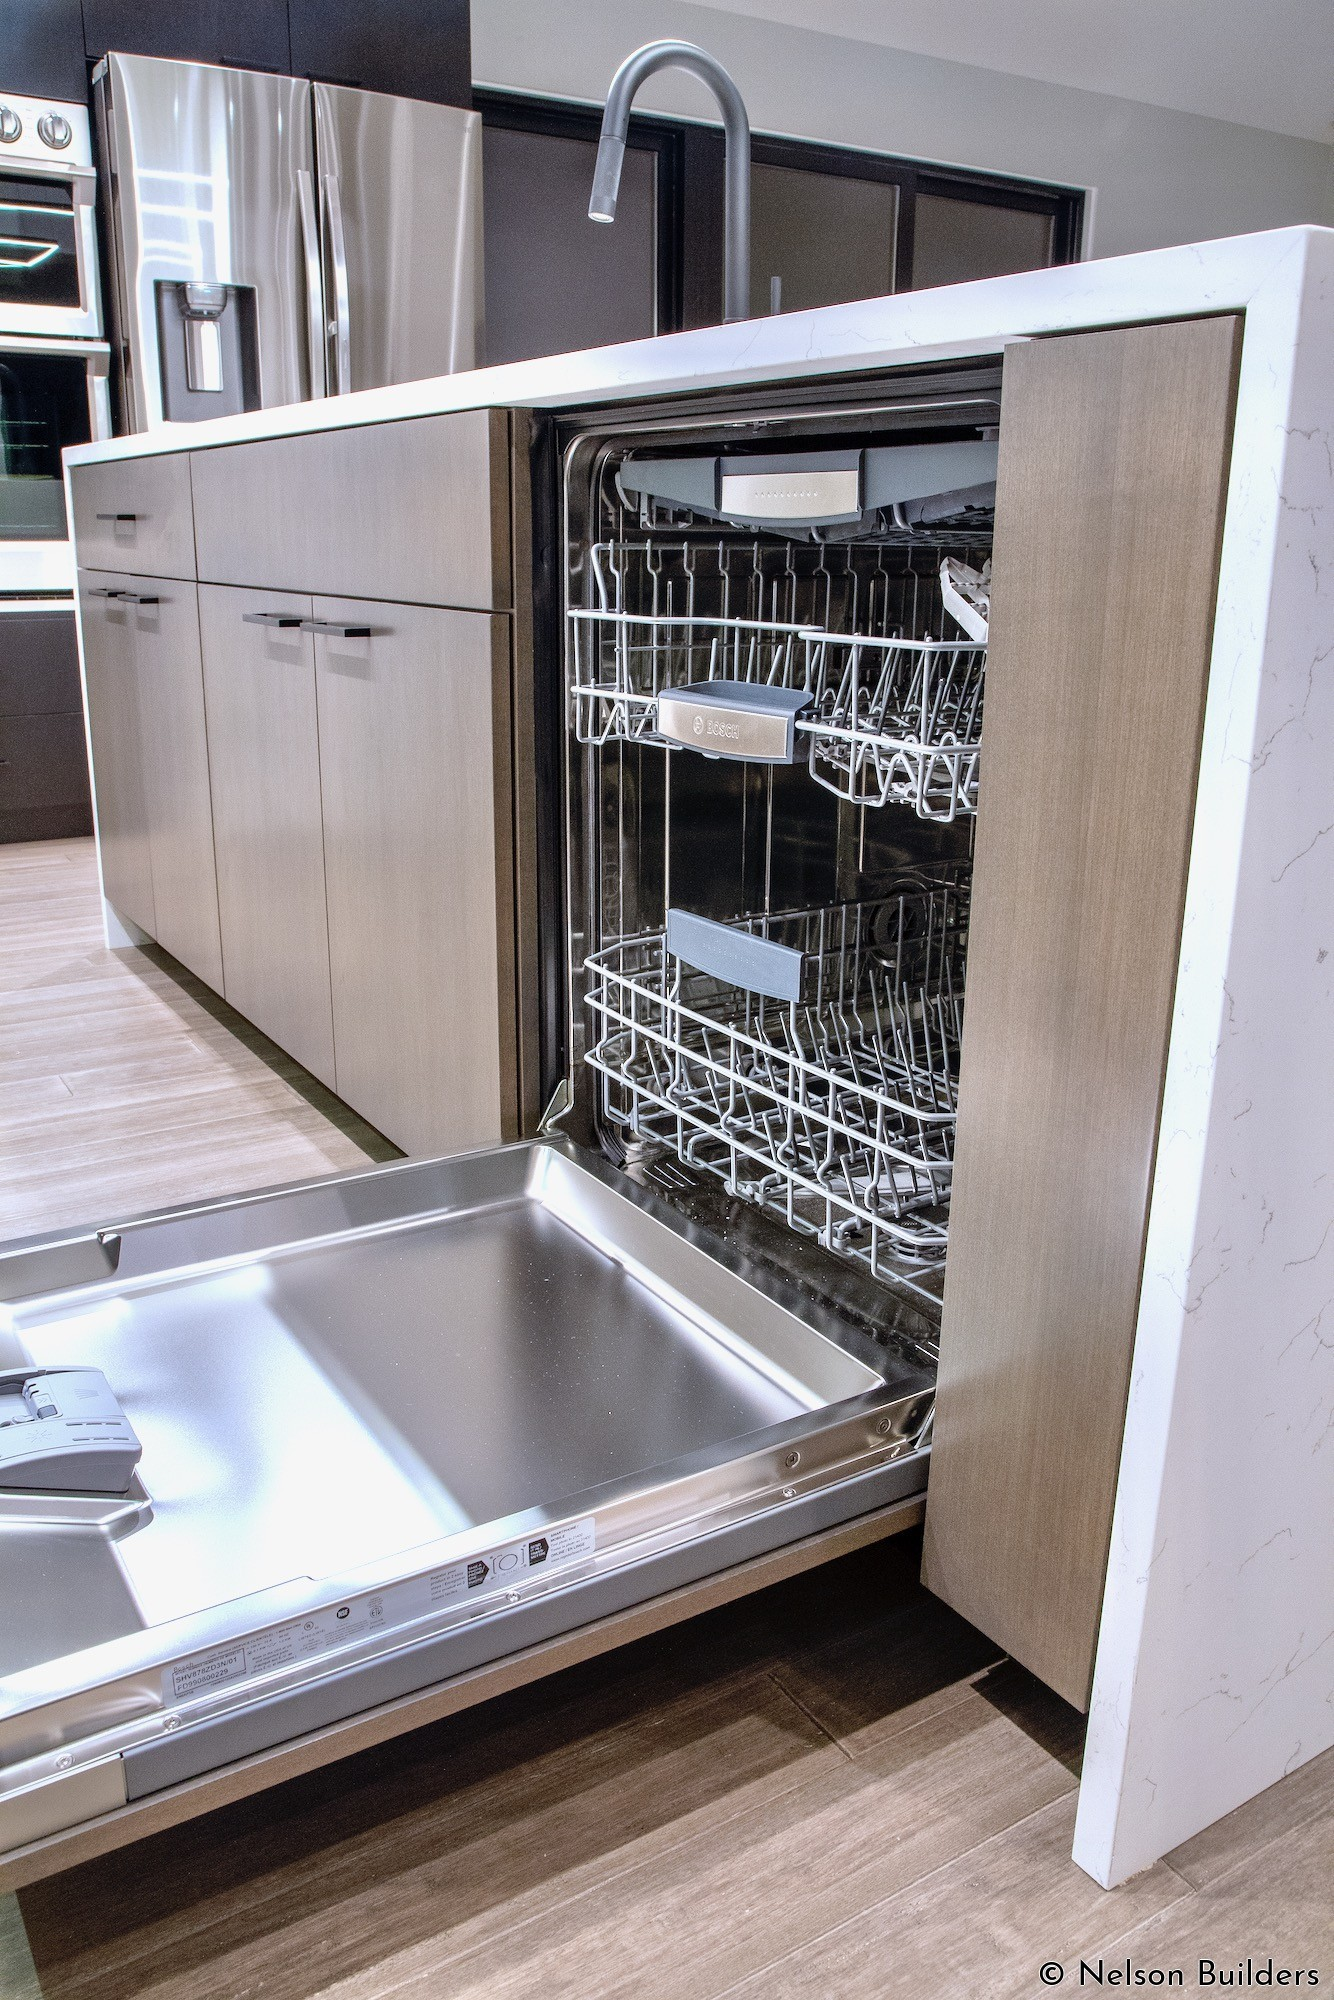 The panel front, integrated dishwasher is easily hidden in the island and blends in with the other millwork.